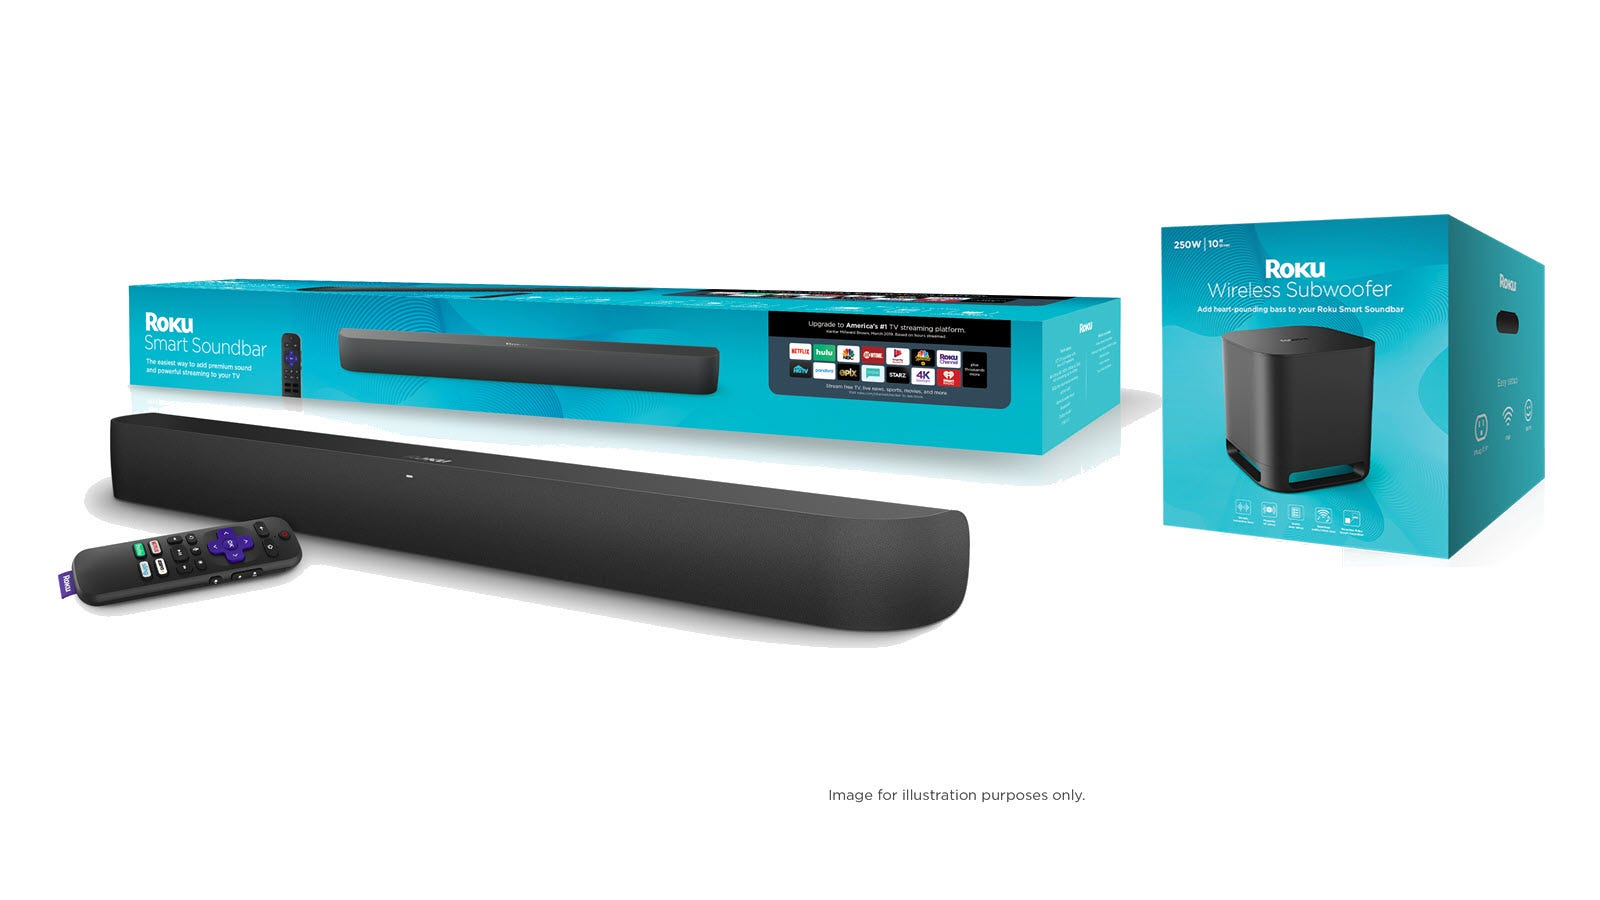 The Roku Smart Sound bar and remote next to the Roku Wireless Subwoofer Box.